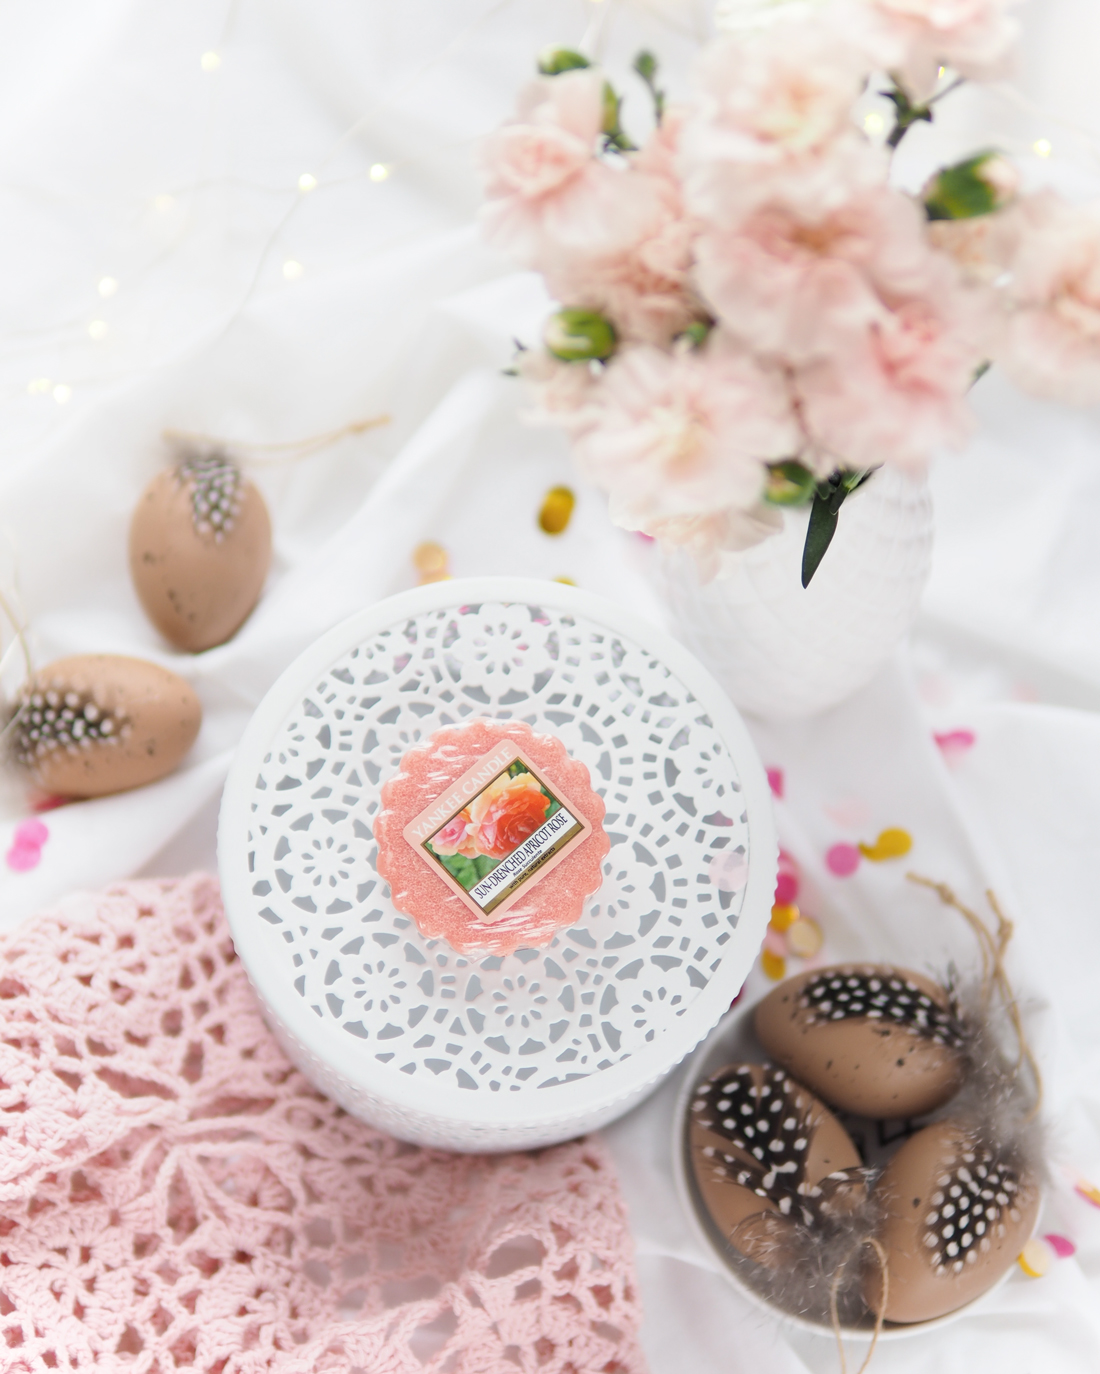 Zapach na Wielkanoc - Sun-Drenched Apricot Rose od Yankee Candle